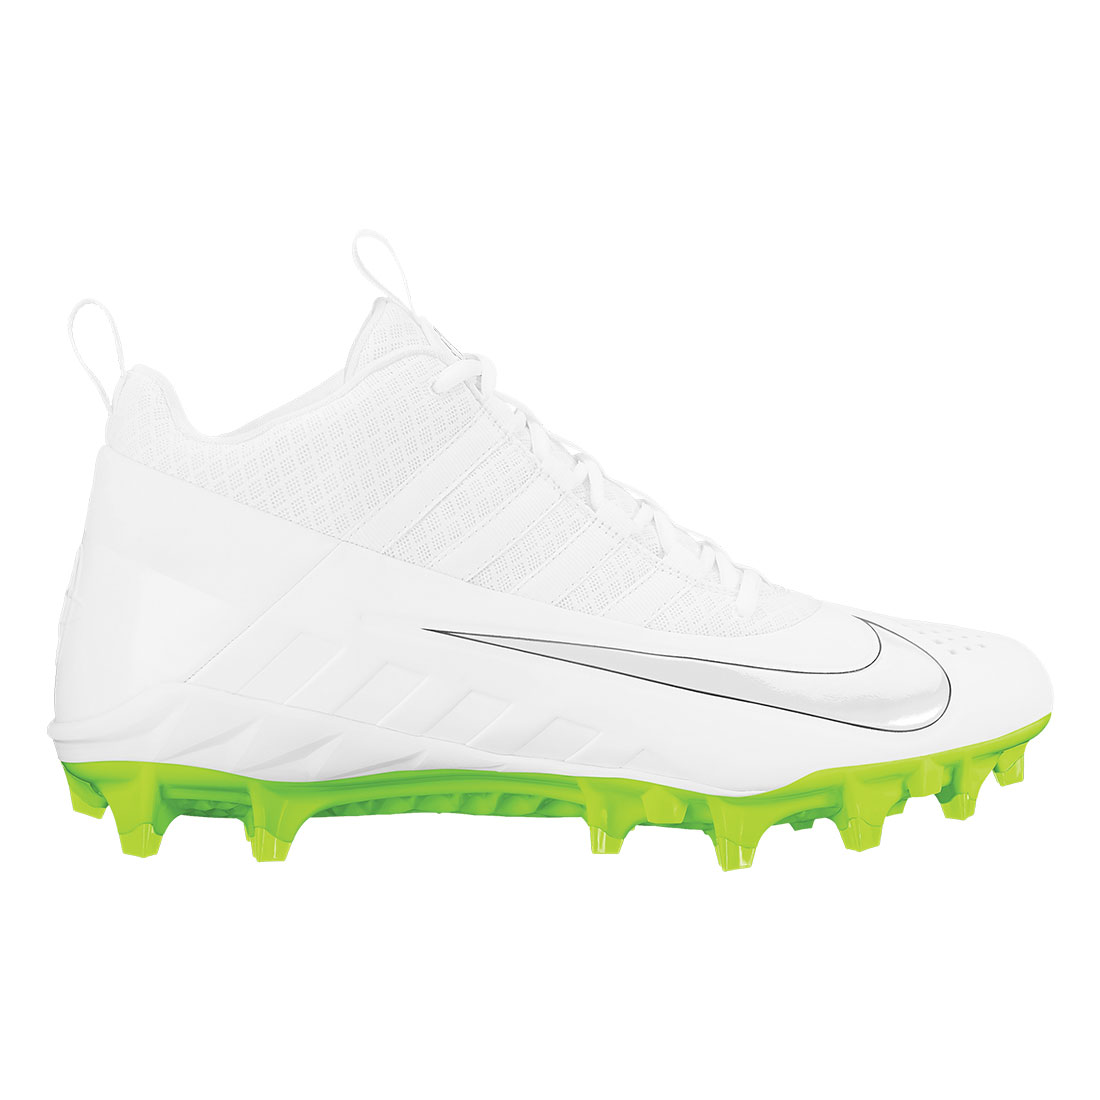 c4fb914666793 Nike Alpha Huarache 6 Pro LAX Cleats - longstreth.com